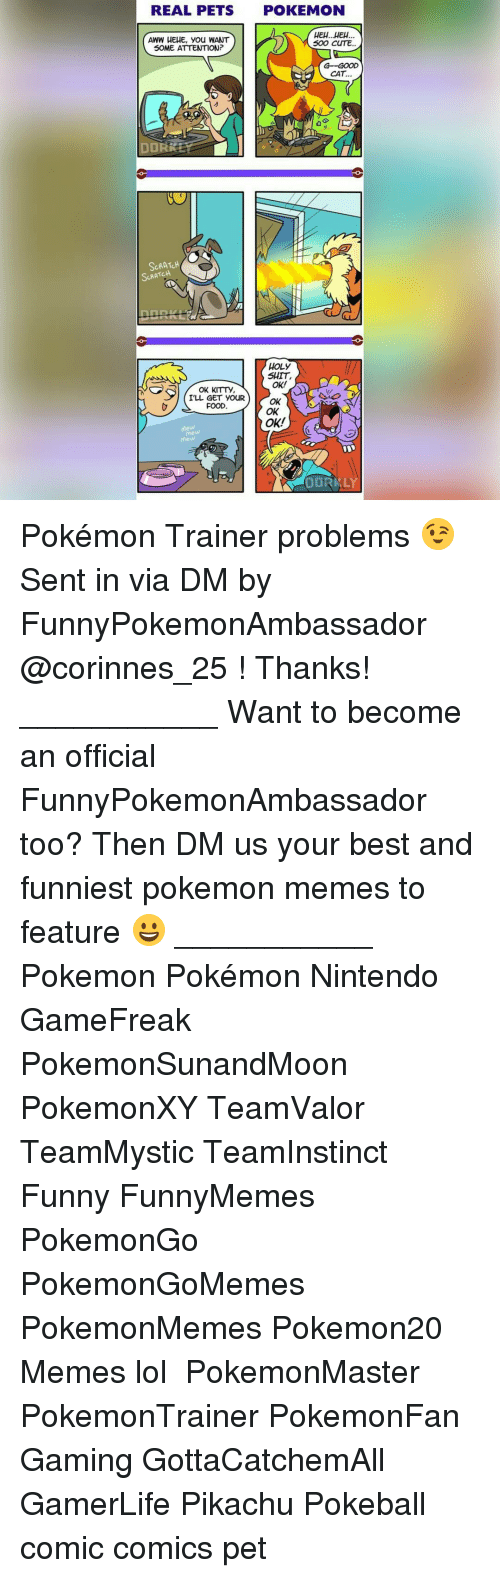 Memes, 🤖, and Cites: REAL PETS  POKEMON  HEH...HEH.  AWW HEHE, you WANT  SOO CITE.  SOME ATTENTION?  CAT.  DORR  SCRATCH  SARATCH  HOLY  SHIT,  OK!  OK KITTy,  ILL GET YOUR OK  FOOD  OK  OK!  DORMLY Pokémon Trainer problems 😉 Sent in via DM by FunnyPokemonAmbassador @corinnes_25 ! Thanks! ___________ Want to become an official FunnyPokemonAmbassador too? Then DM us your best and funniest pokemon memes to feature 😀 ___________ Pokemon Pokémon Nintendo GameFreak PokemonSunandMoon PokemonXY TeamValor TeamMystic TeamInstinct Funny FunnyMemes PokemonGo PokemonGoMemes PokemonMemes Pokemon20 Memes lol ポケットモンスター PokemonMaster PokemonTrainer PokemonFan Gaming GottaCatchemAll GamerLife Pikachu Pokeball comic comics pet